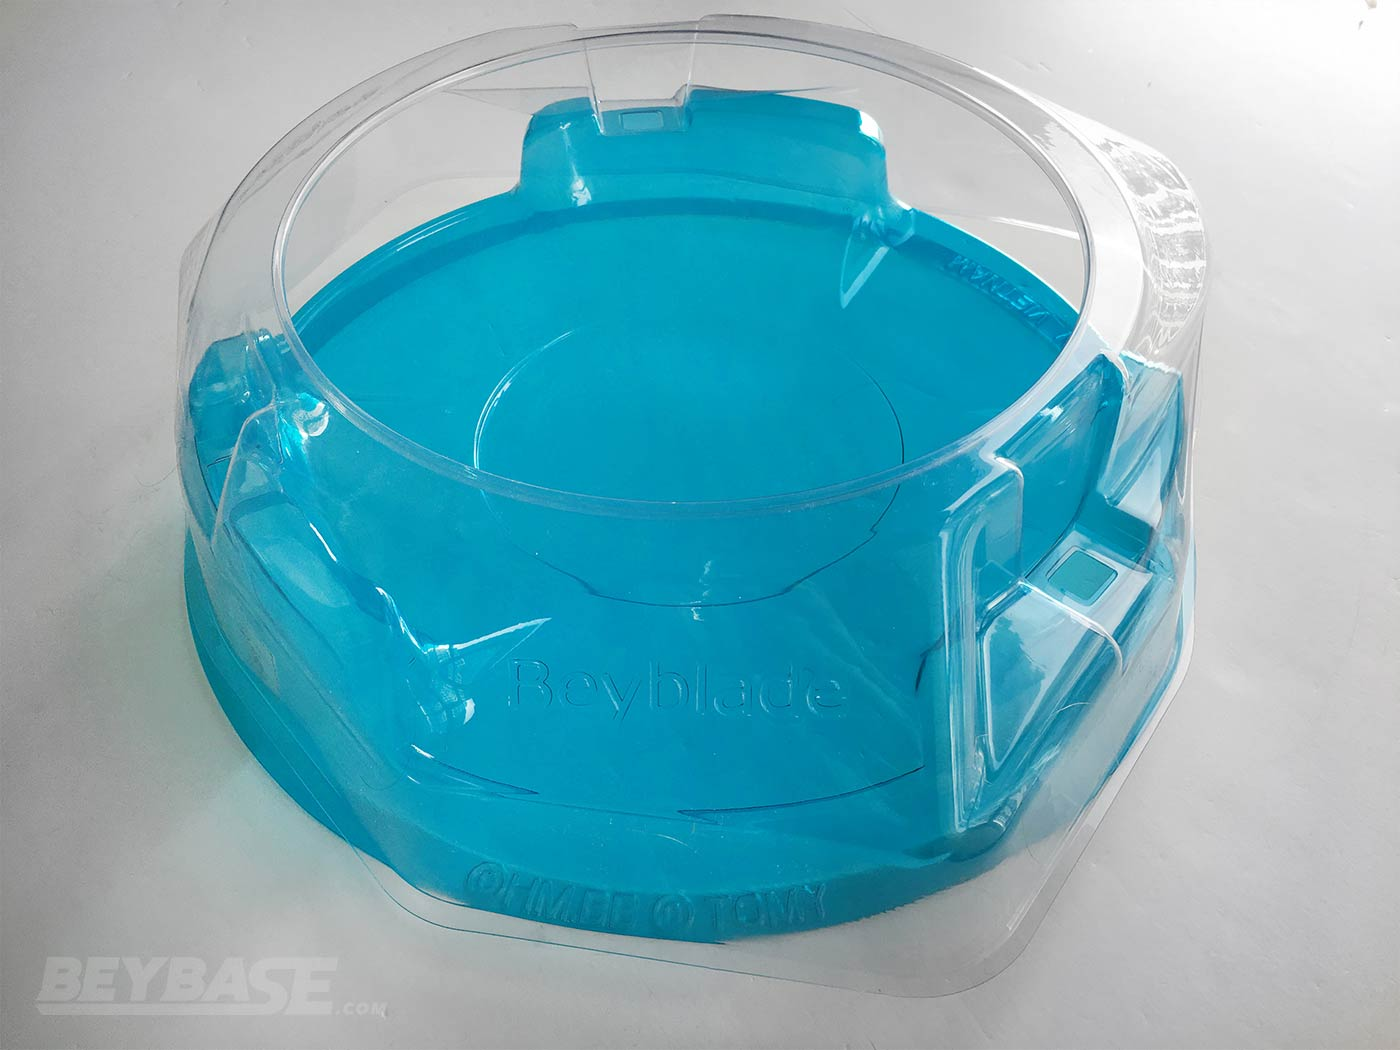 beyblade burst dash beystadium side view